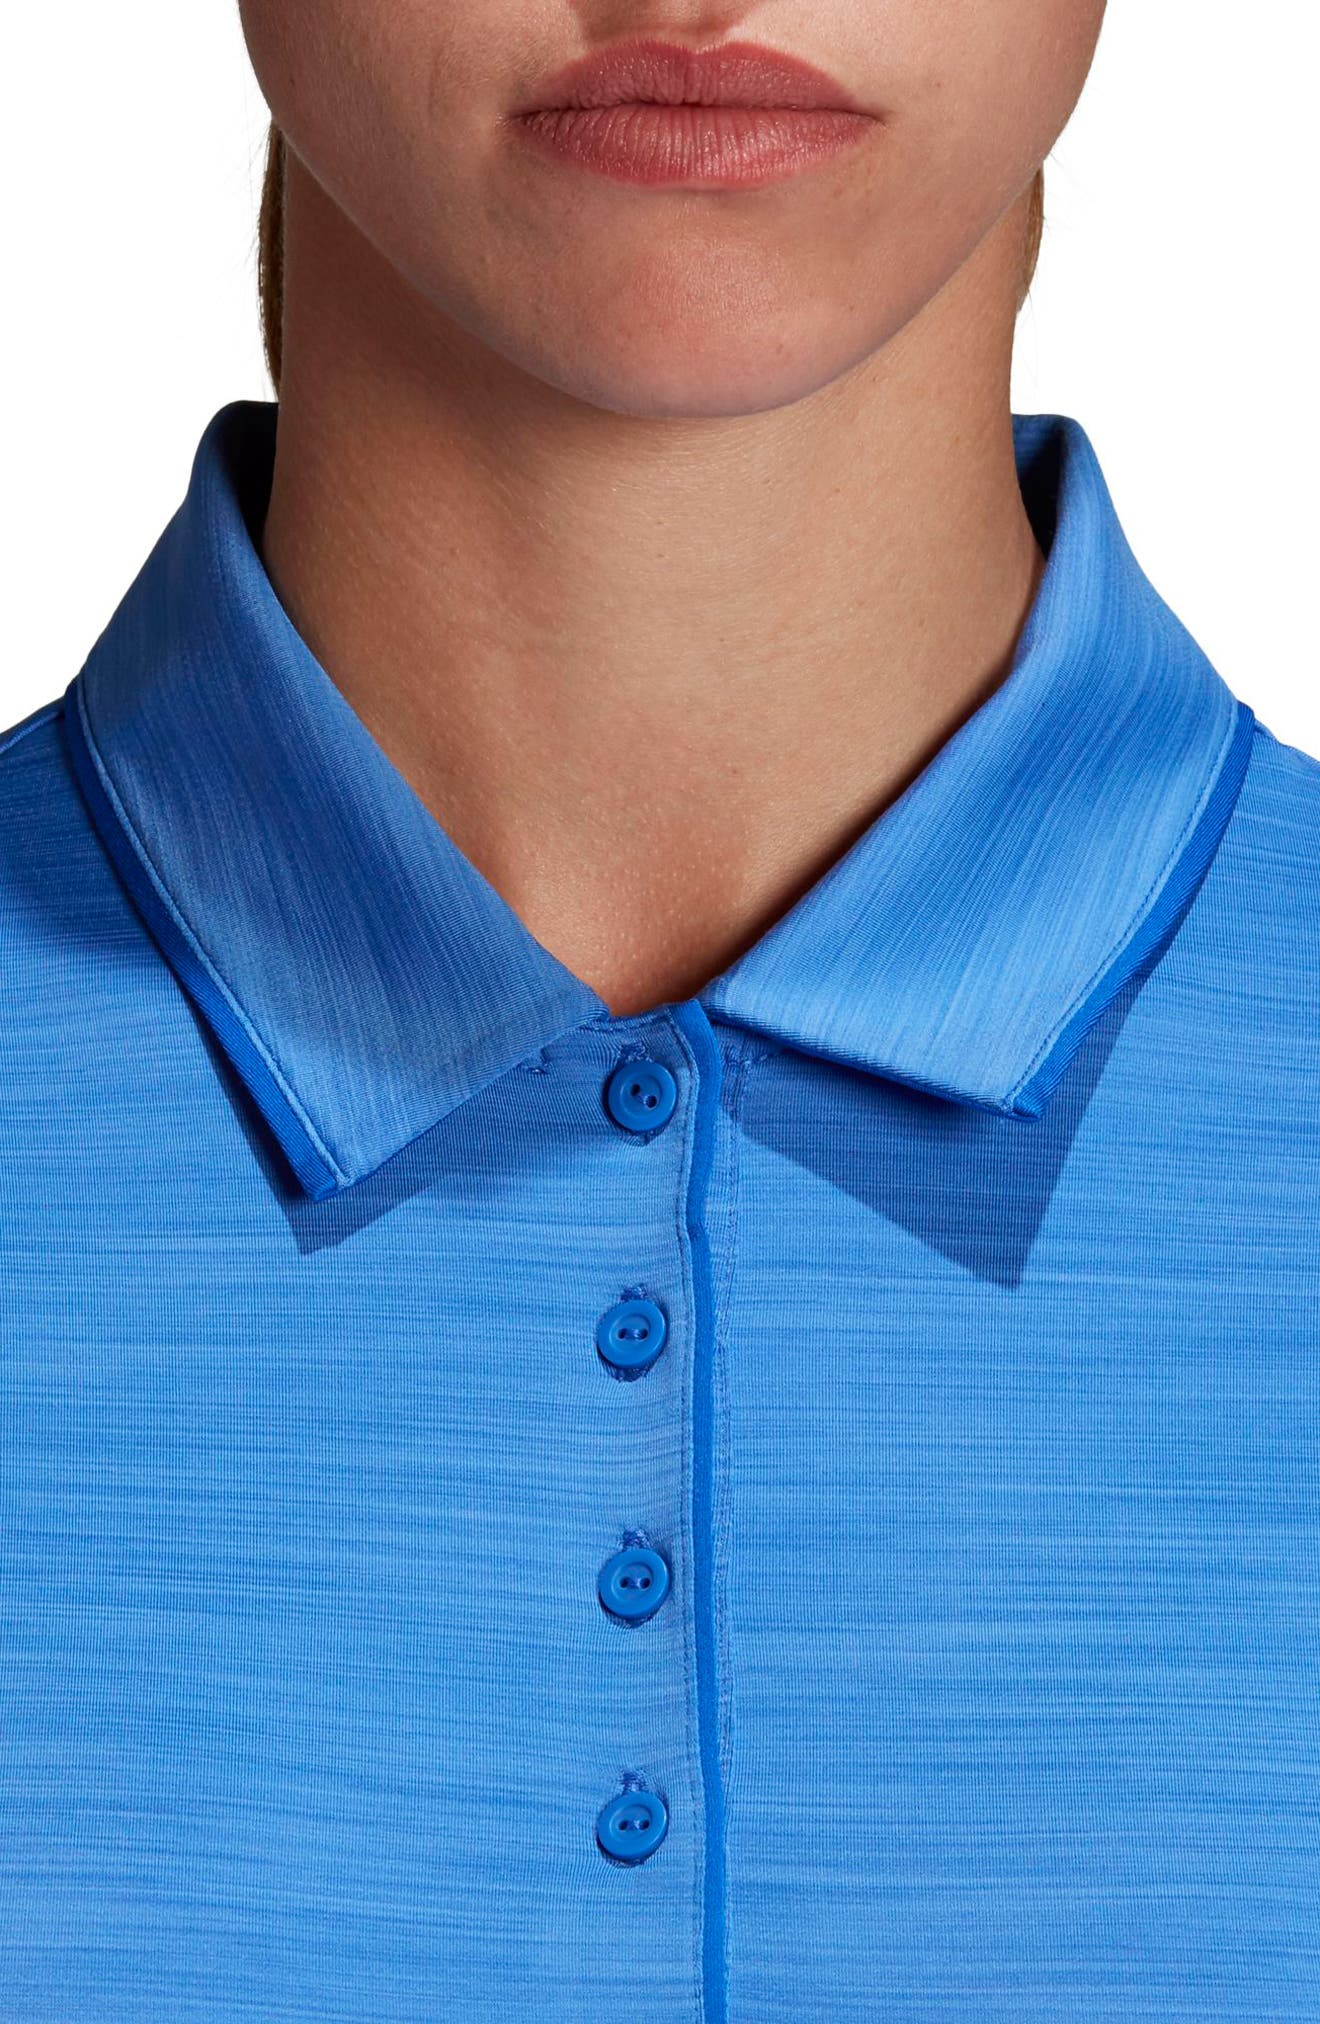 Ultimate365 Sleeveless Golf Polo,                             Alternate thumbnail 4, color,                             Hi-Res Blue